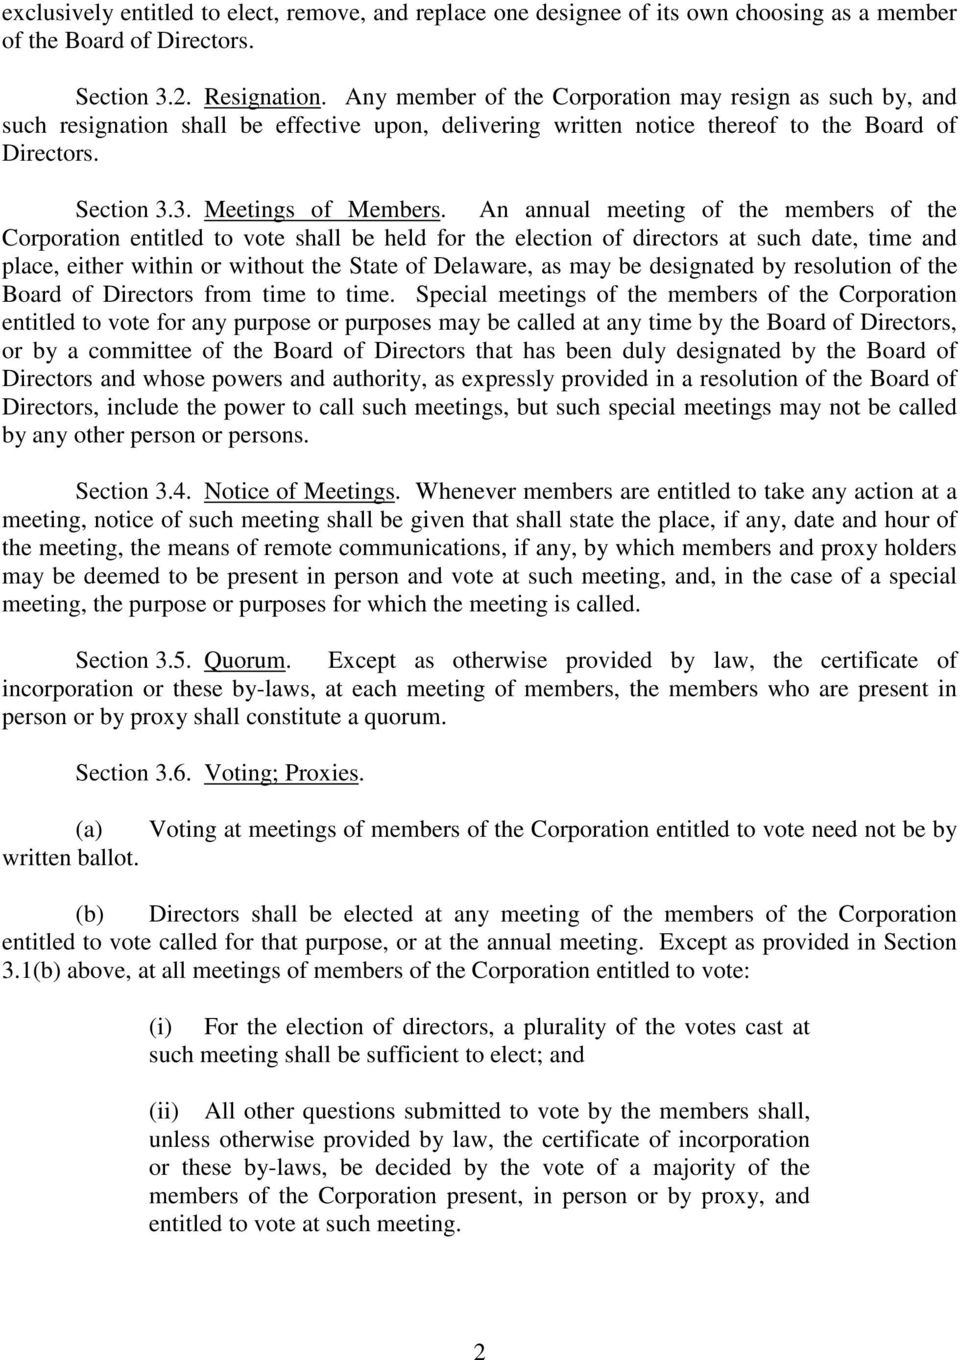 An annual meeting of the members of the Corporation entitled to vote shall be held for the election of directors at such date, time and place, either within or without the State of Delaware, as may